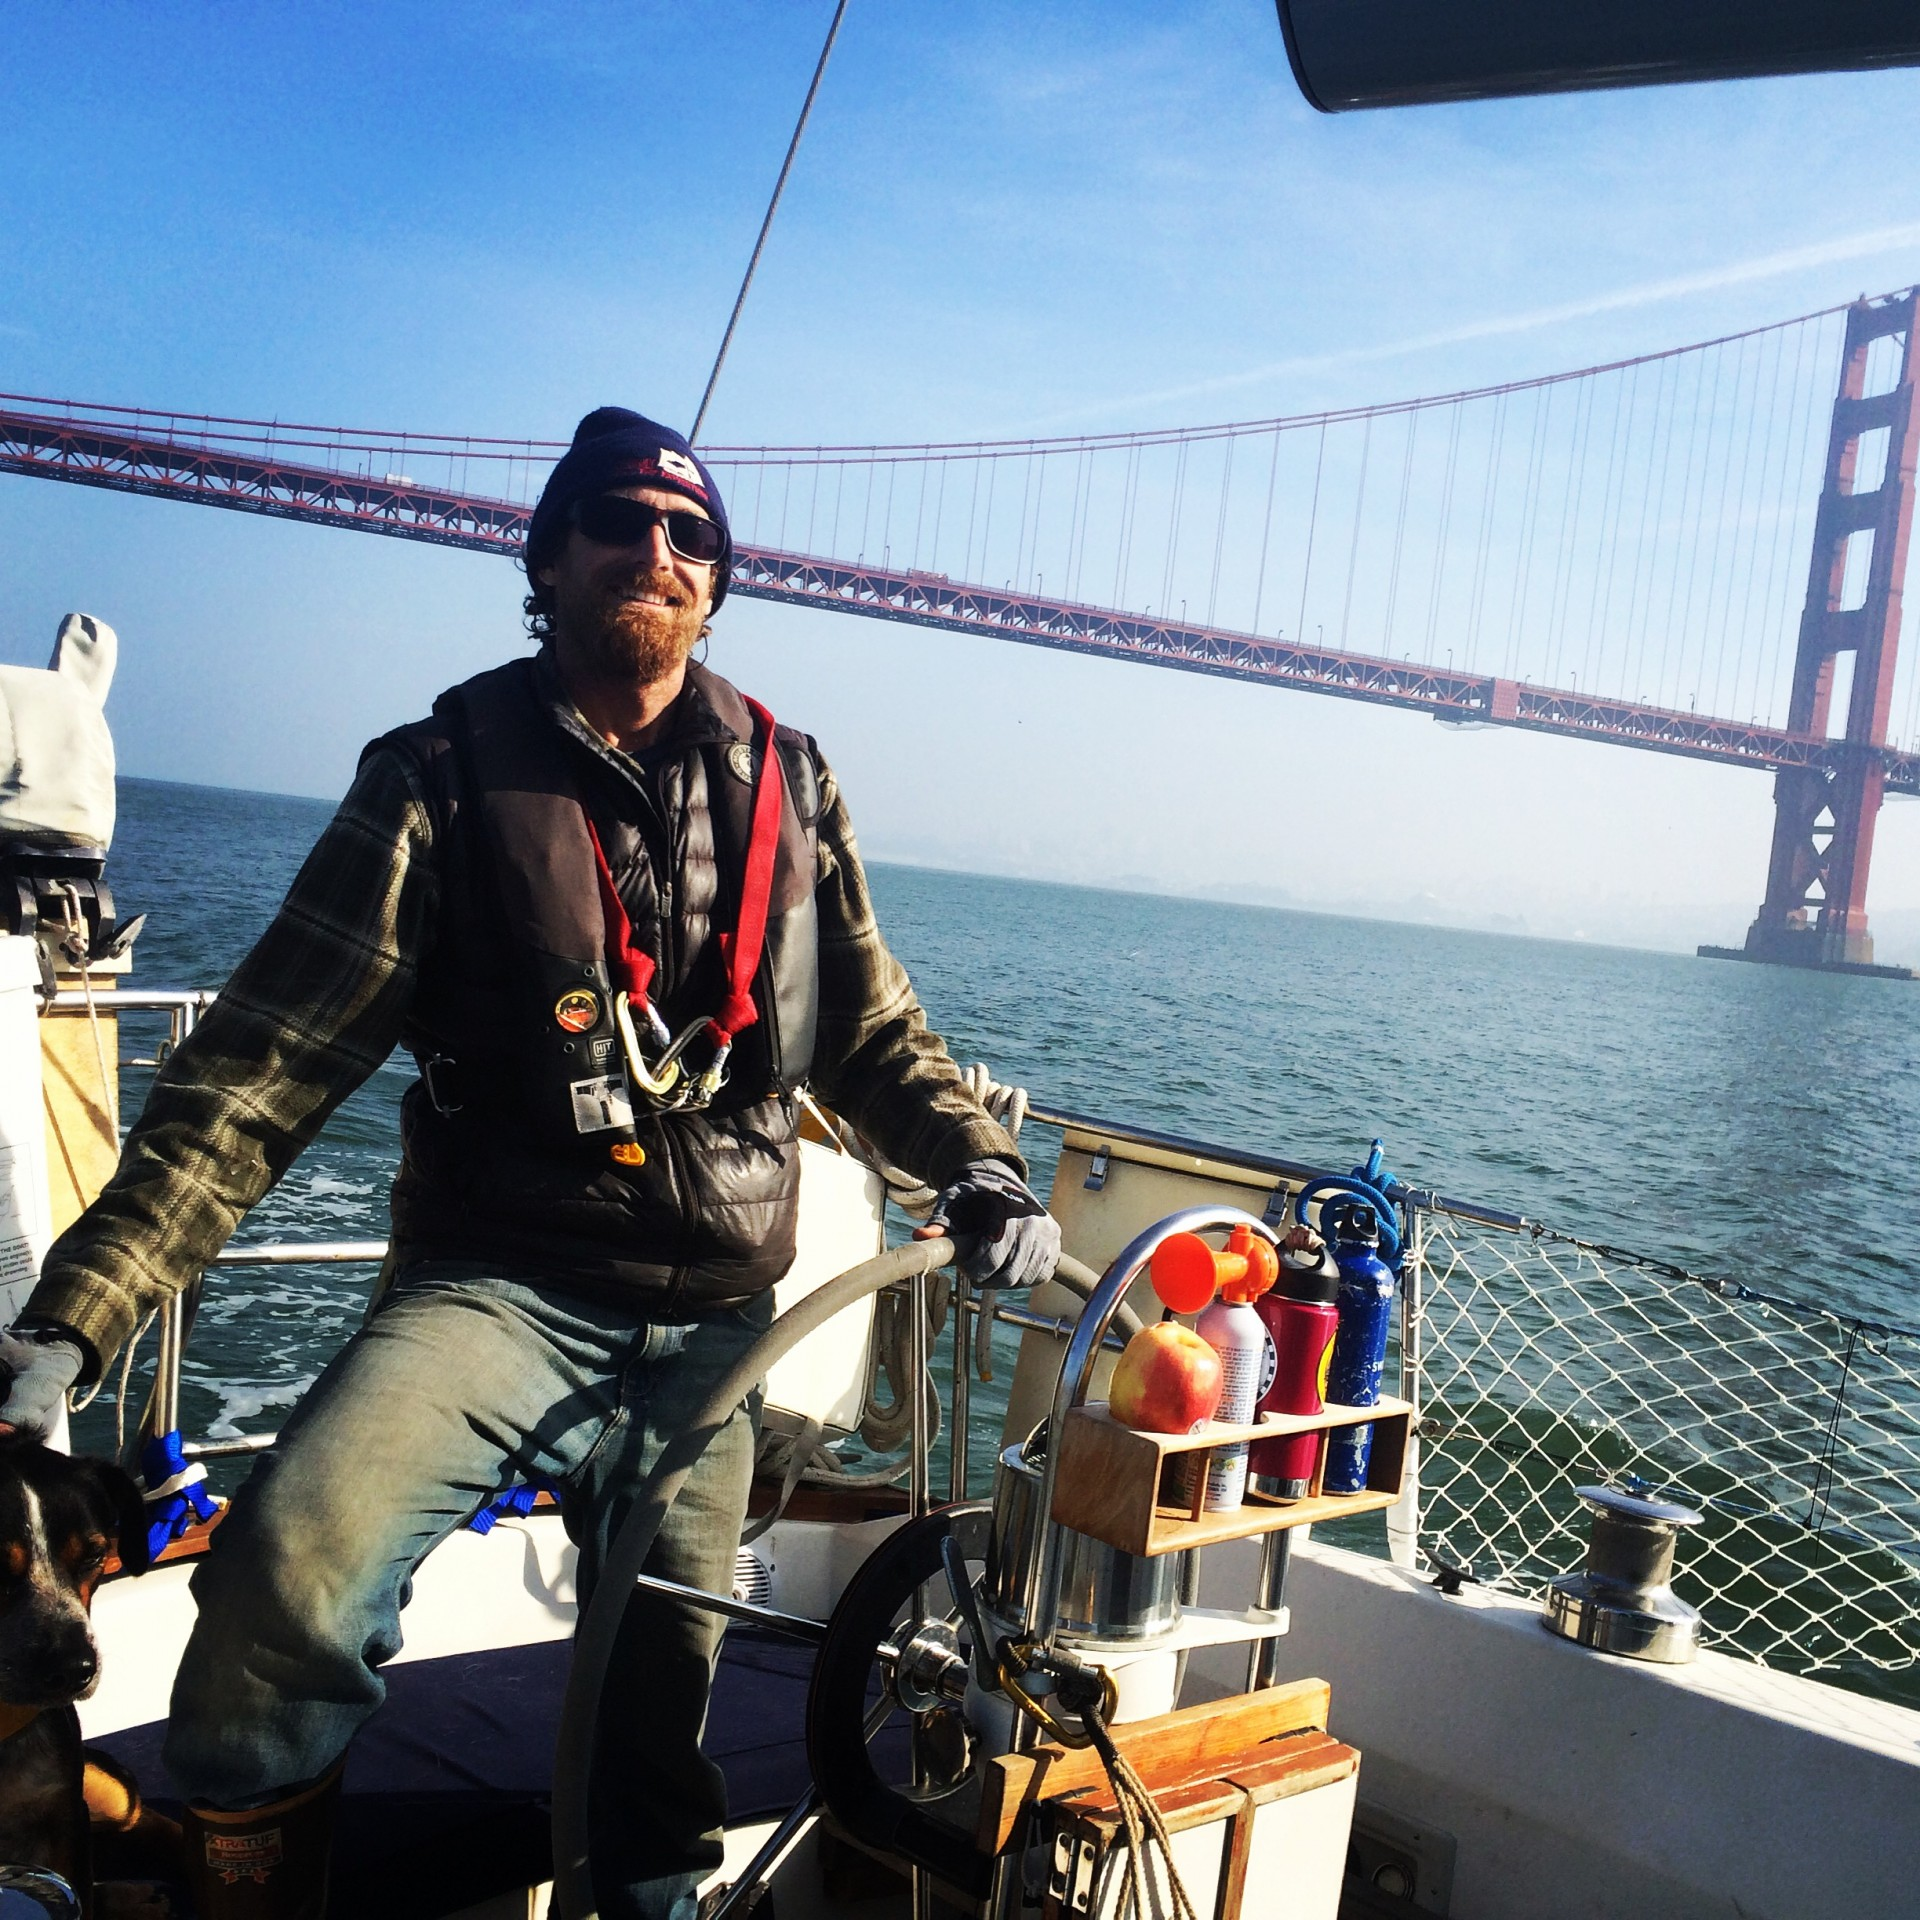 Josh, with help from Bob, sailed Far Niente from Berkeley to San Diego in the less-than-ideal Pacific wintertime conditions.